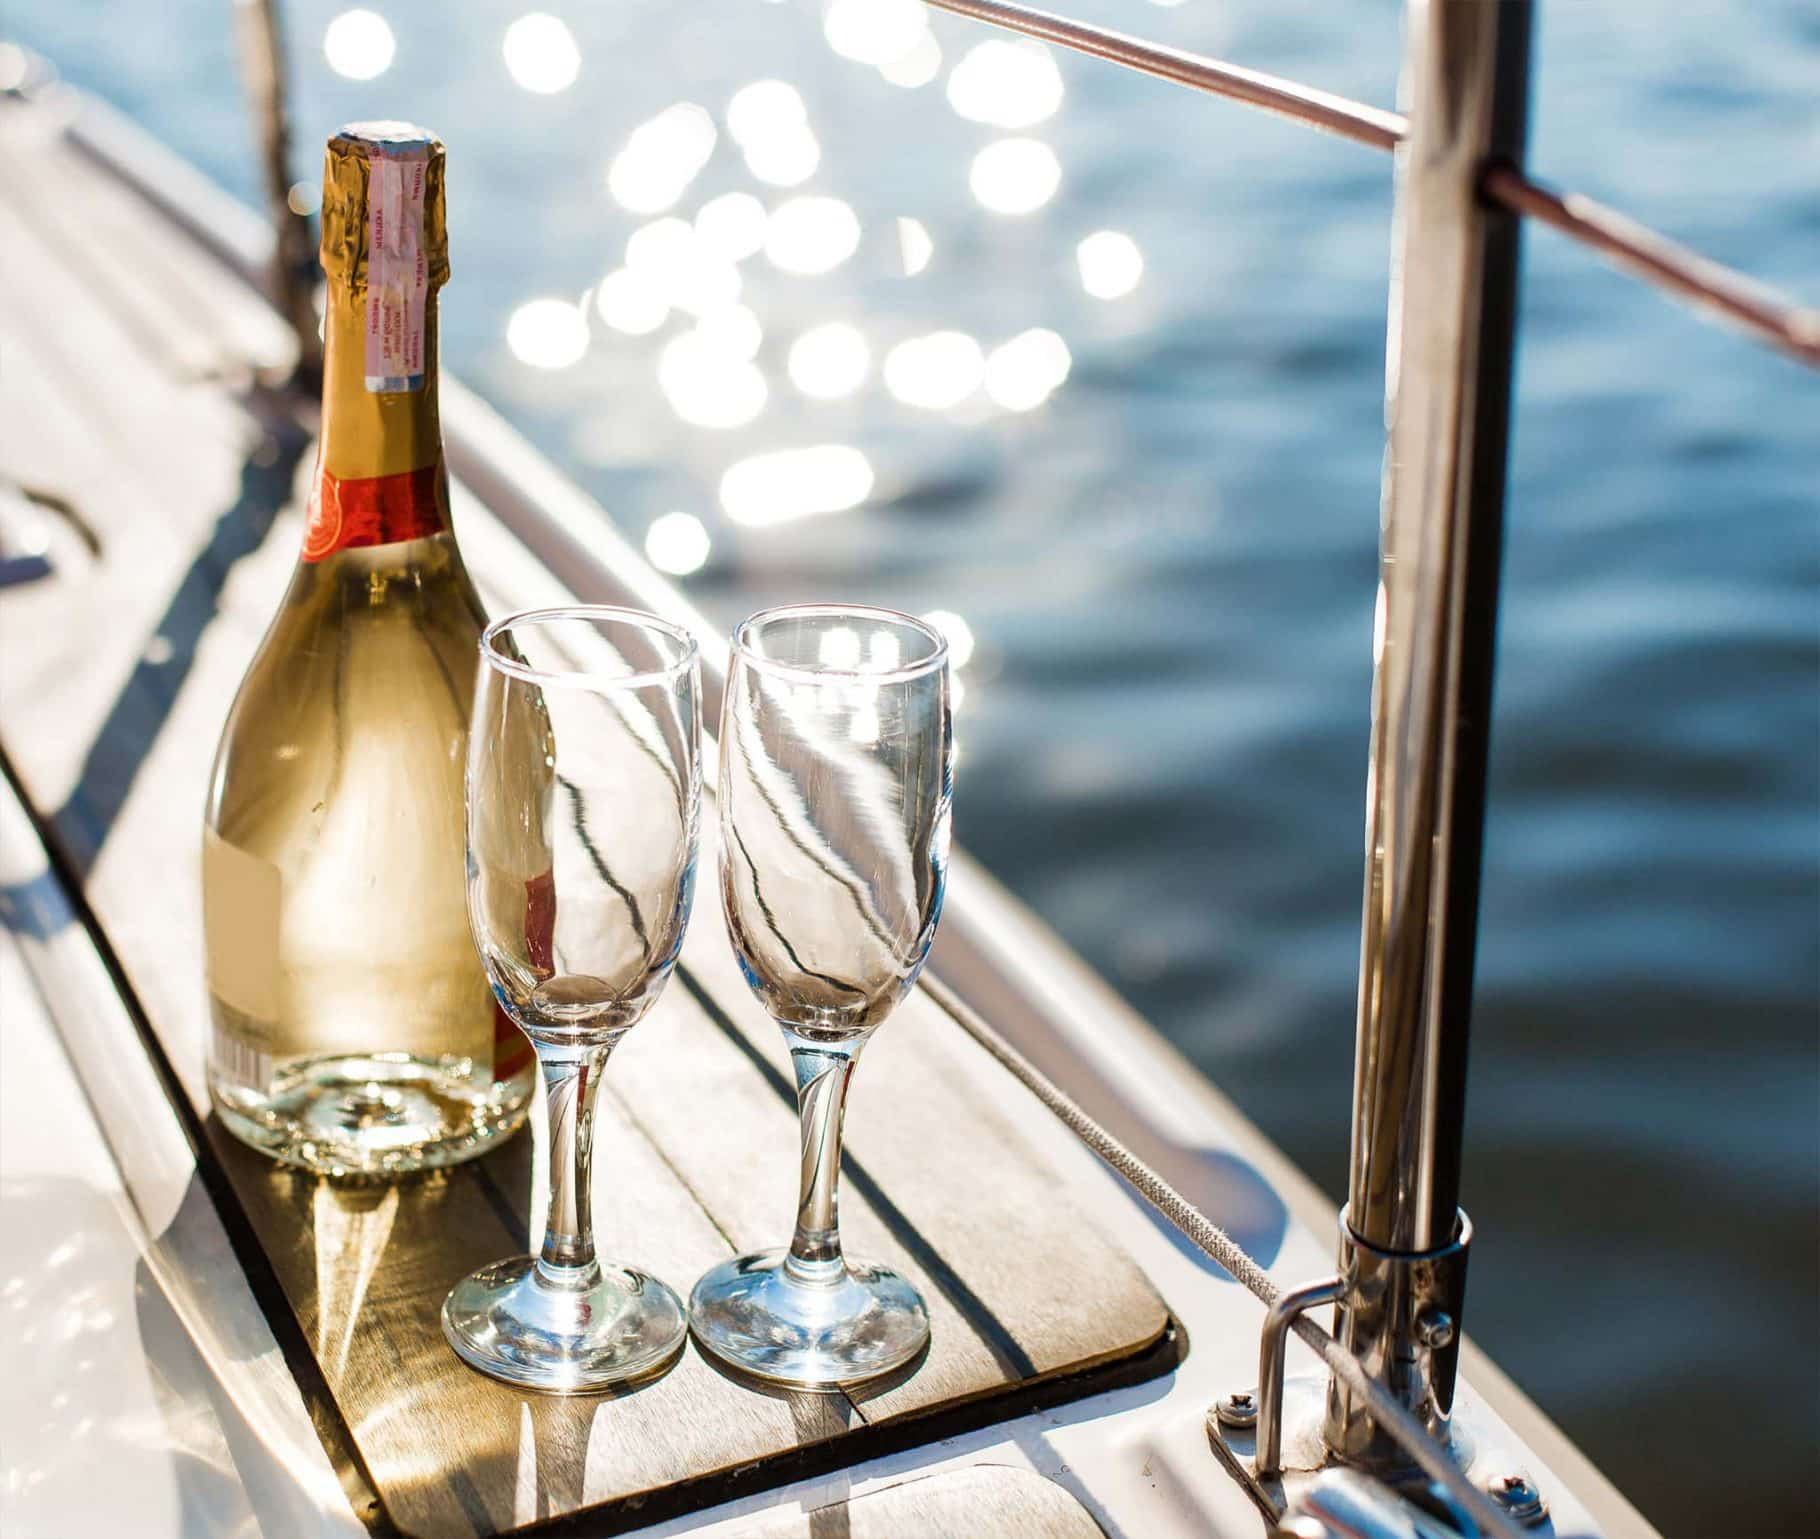 A bottle of champagne and glasses glistening in the sun